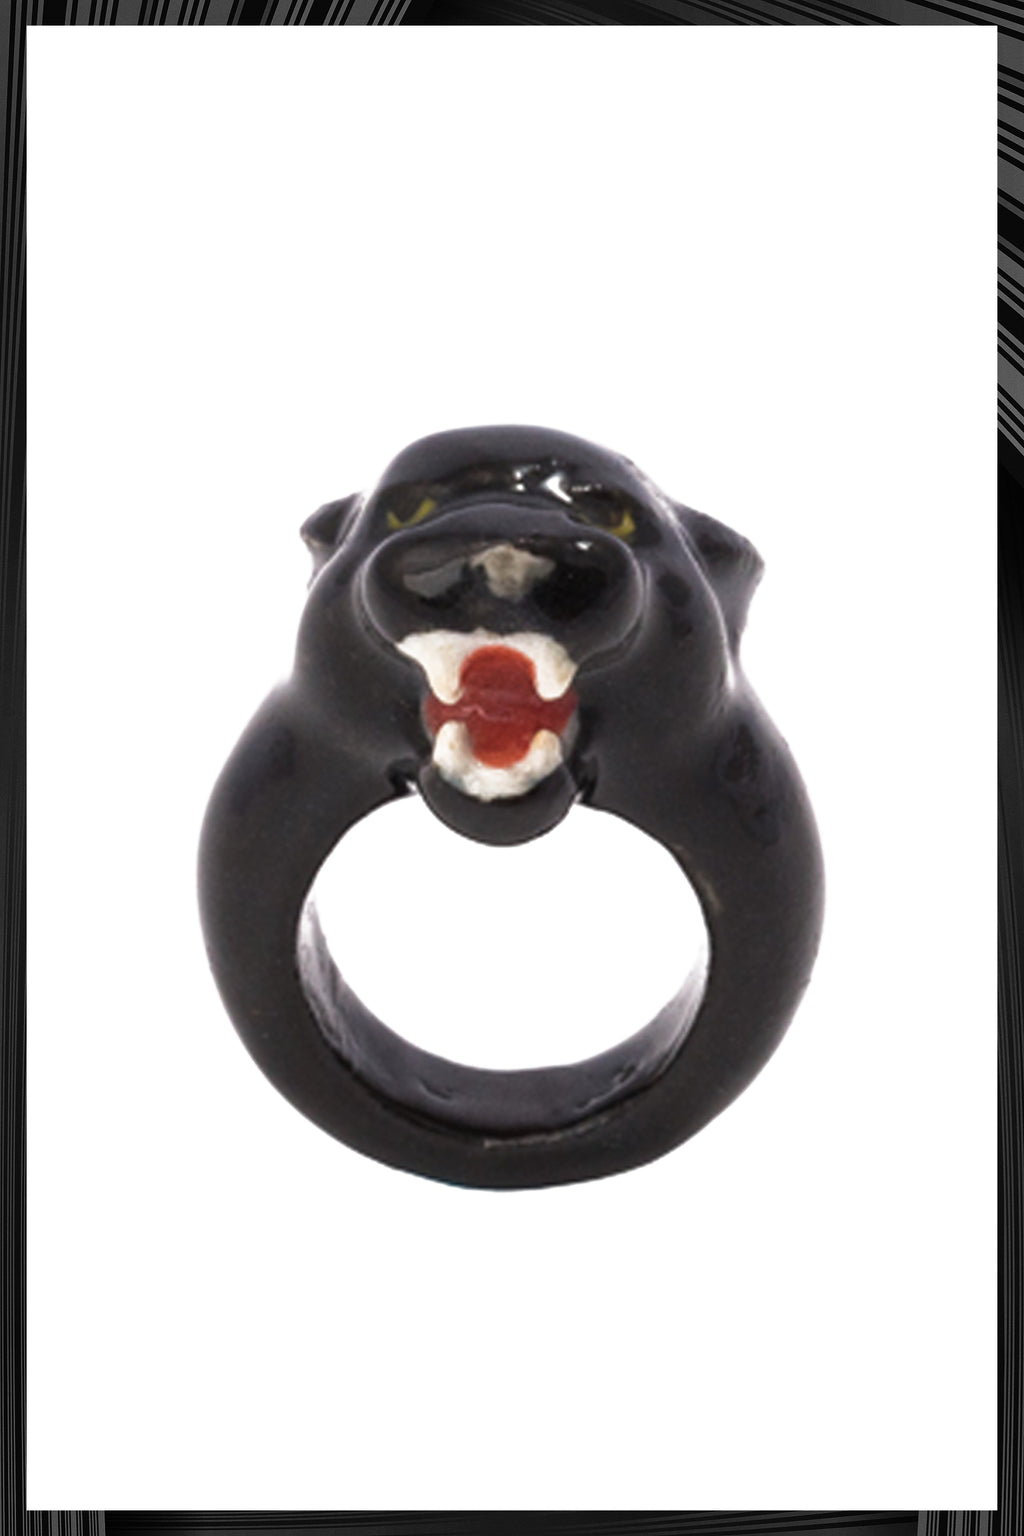 Roaring Black Panther Ring | Free Delivery - Quick Shipping